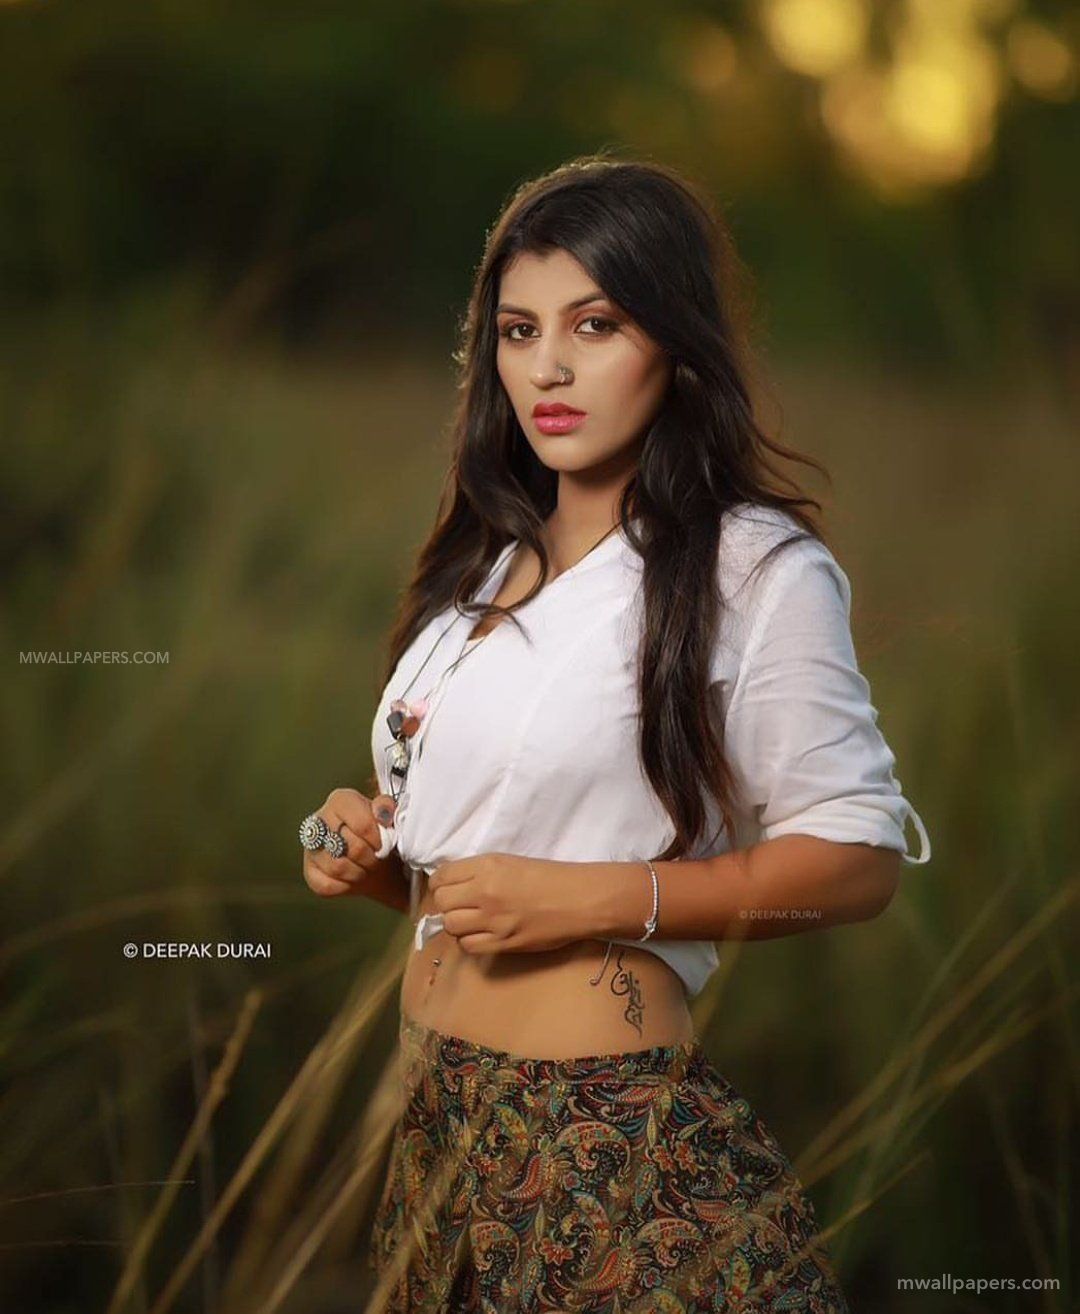 Yashika Anand HD Wallpapers (Desktop Background / Android / iPhone) (1080p, 4k) (56394) - Yashika Anand